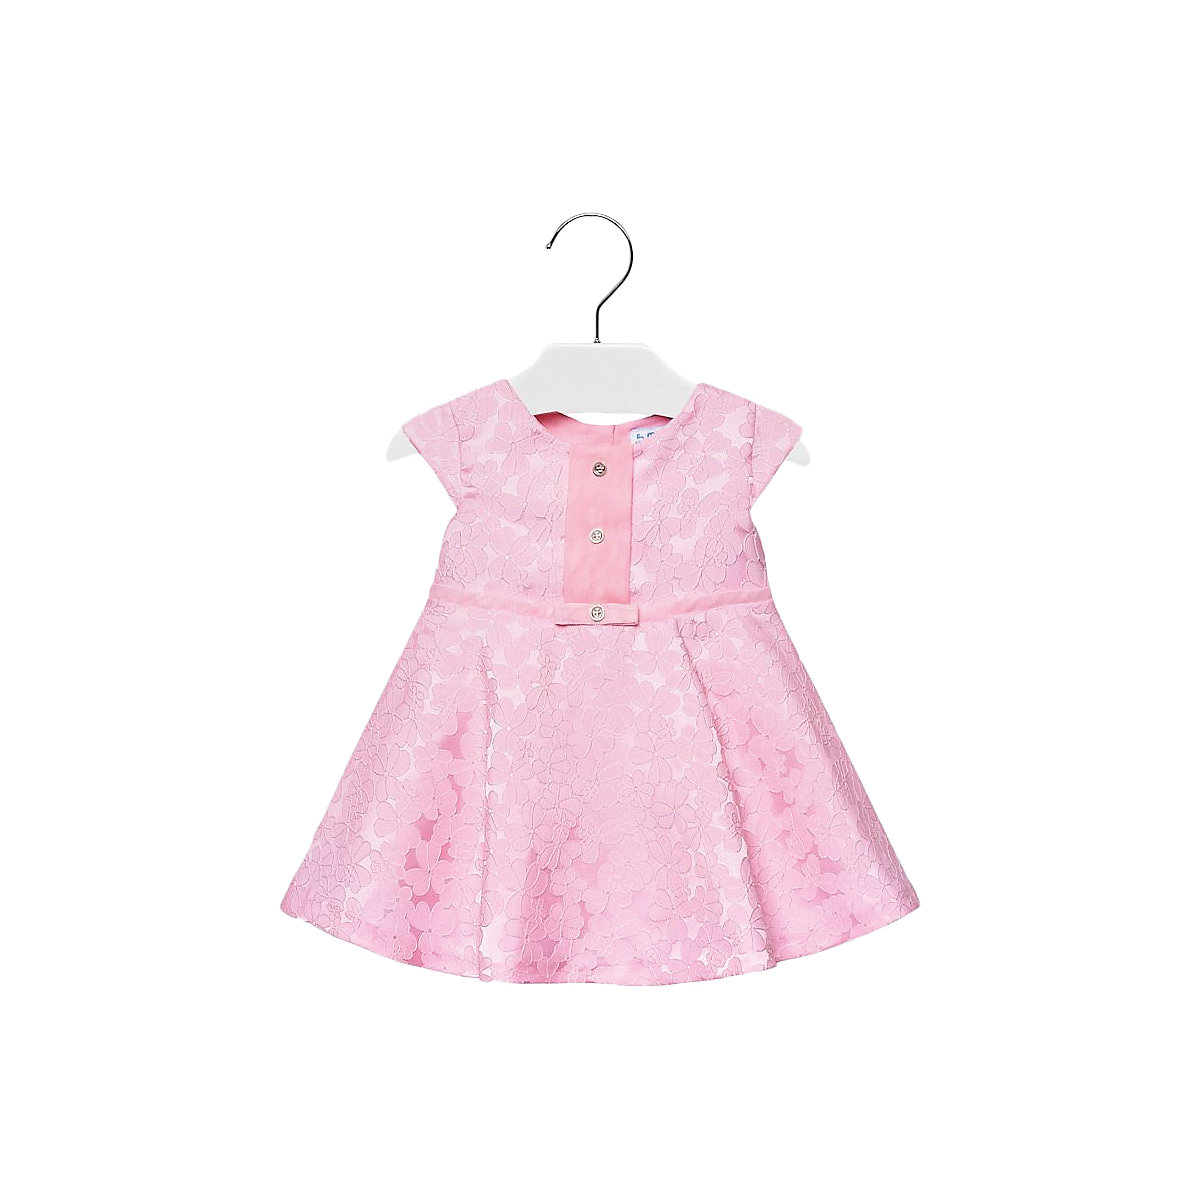 MAYORAL Dresses 10688998 Girl Children fitted pleated skirt Pink Polyester Casual Solid Knee-Length Sleeveless Sleeve